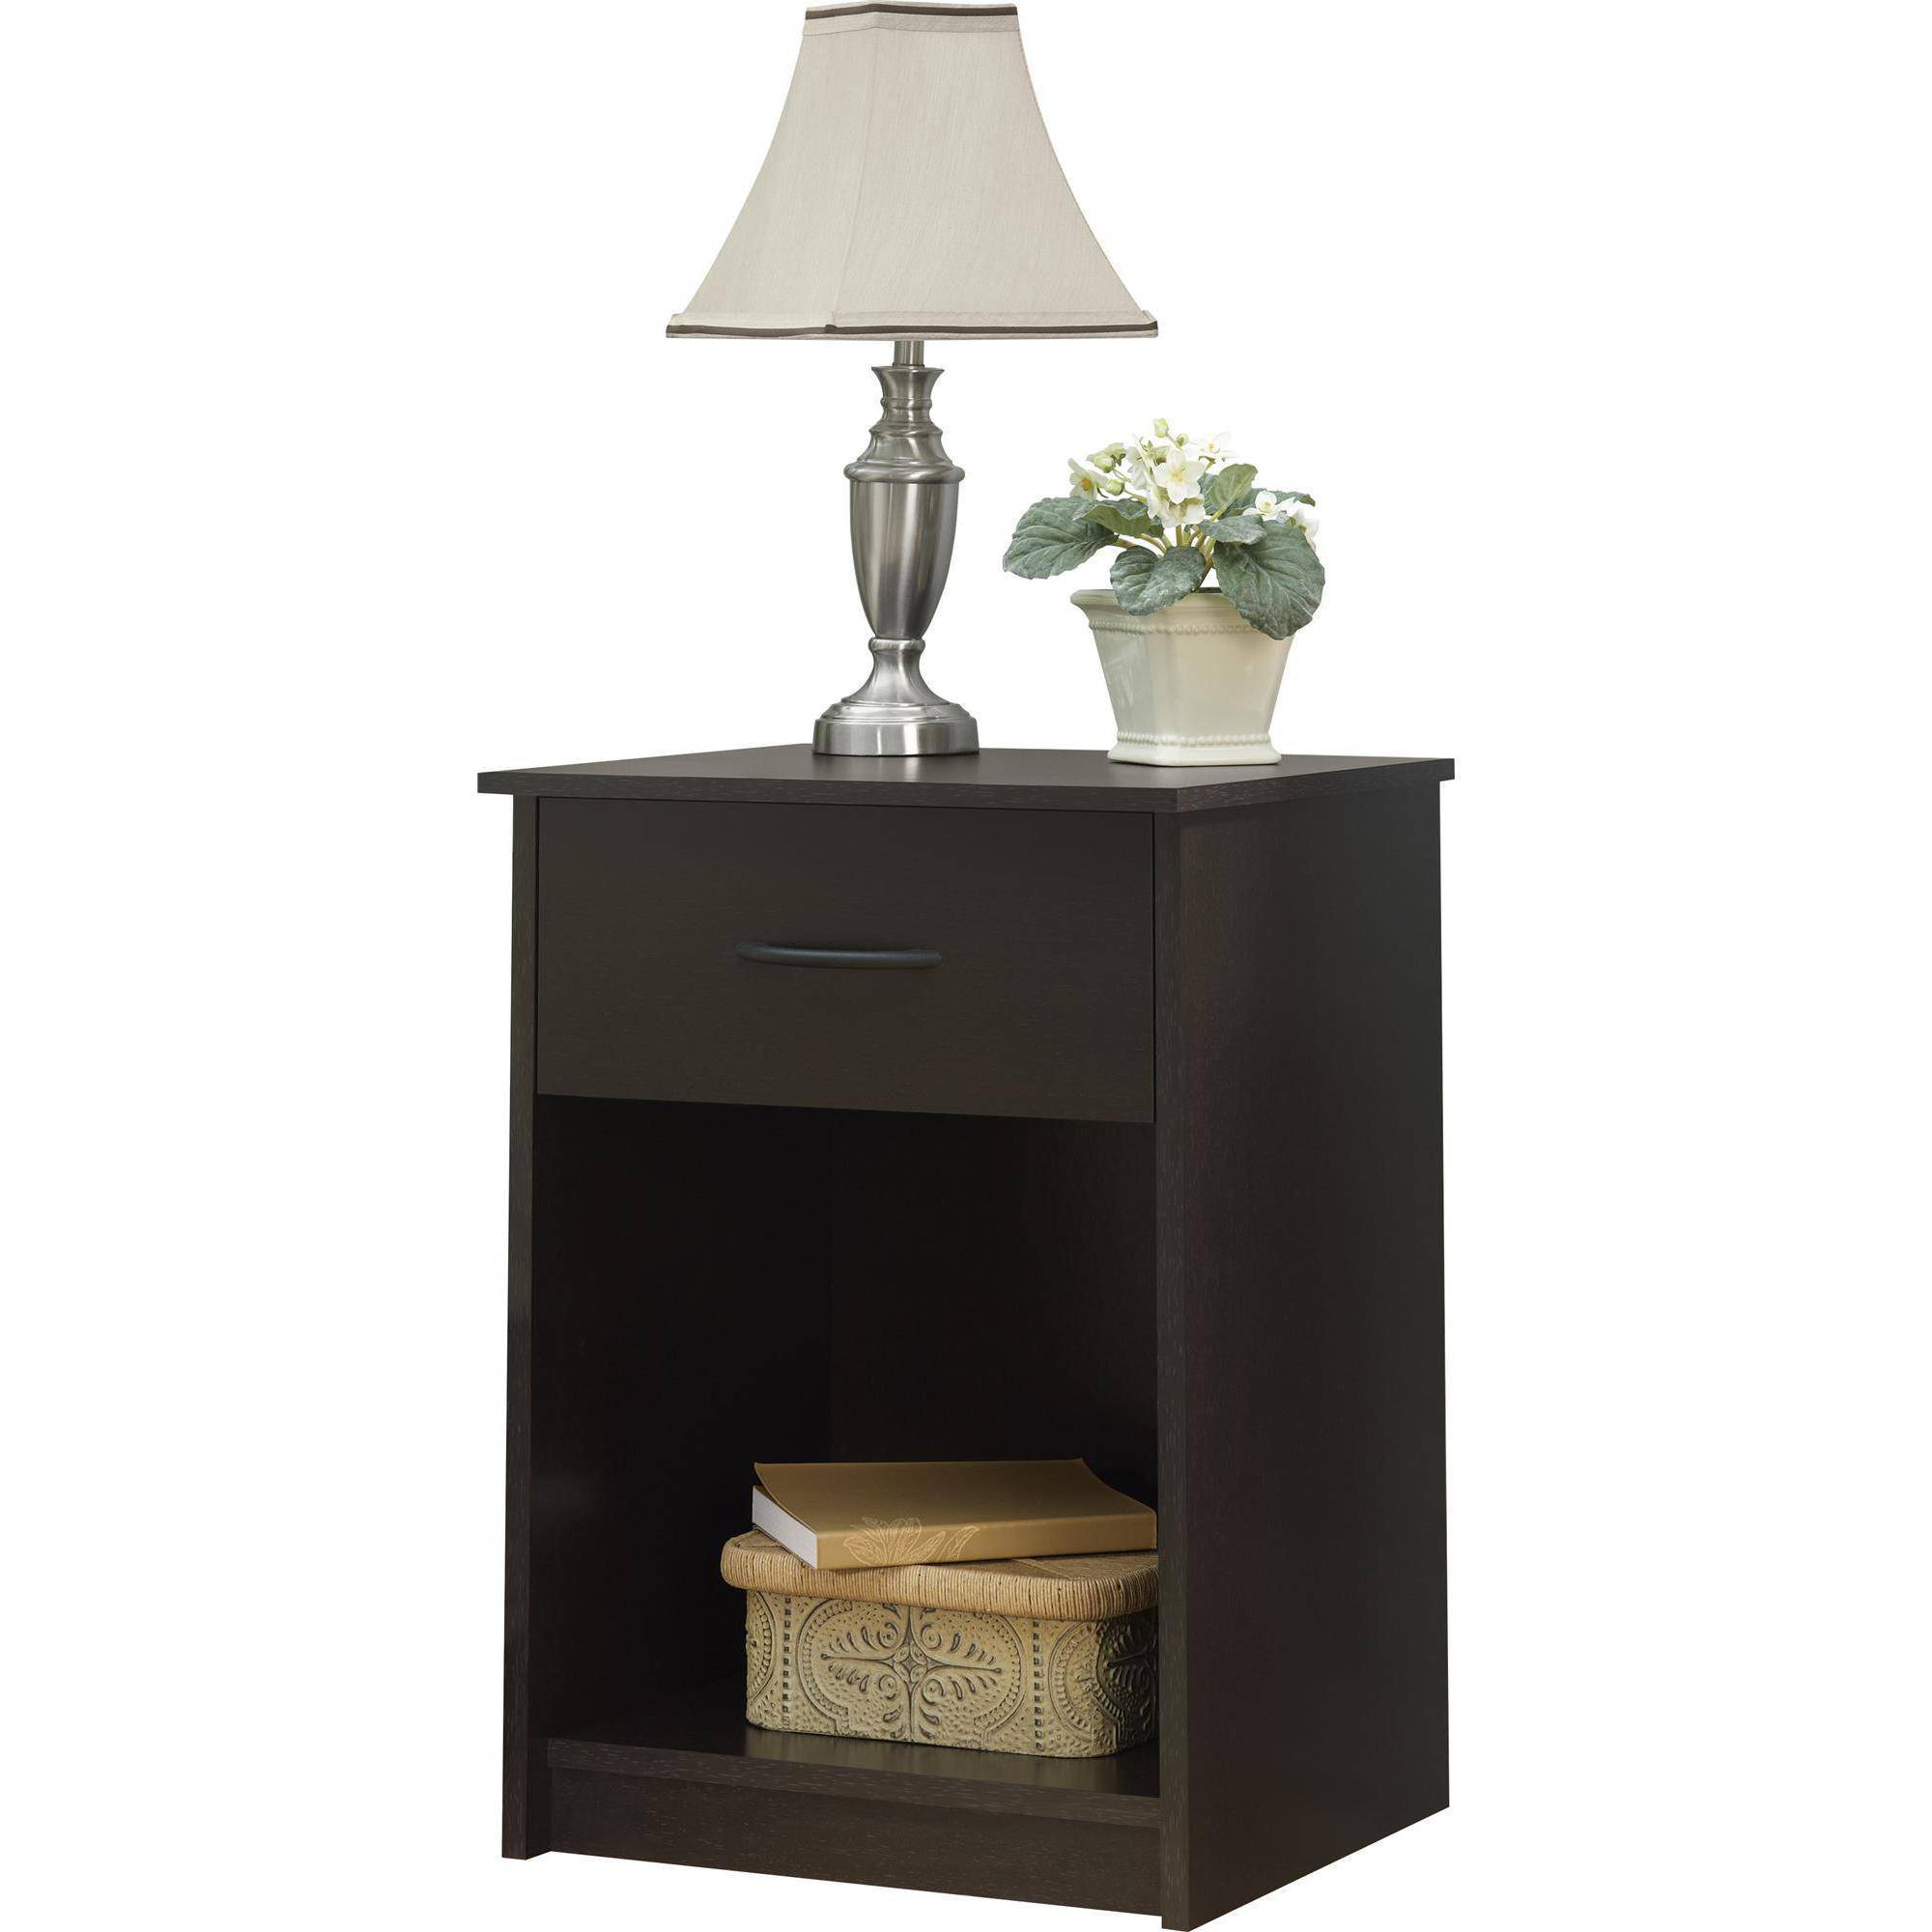 Mainstays 1-Drawer Nightstand / End Table, Espresso